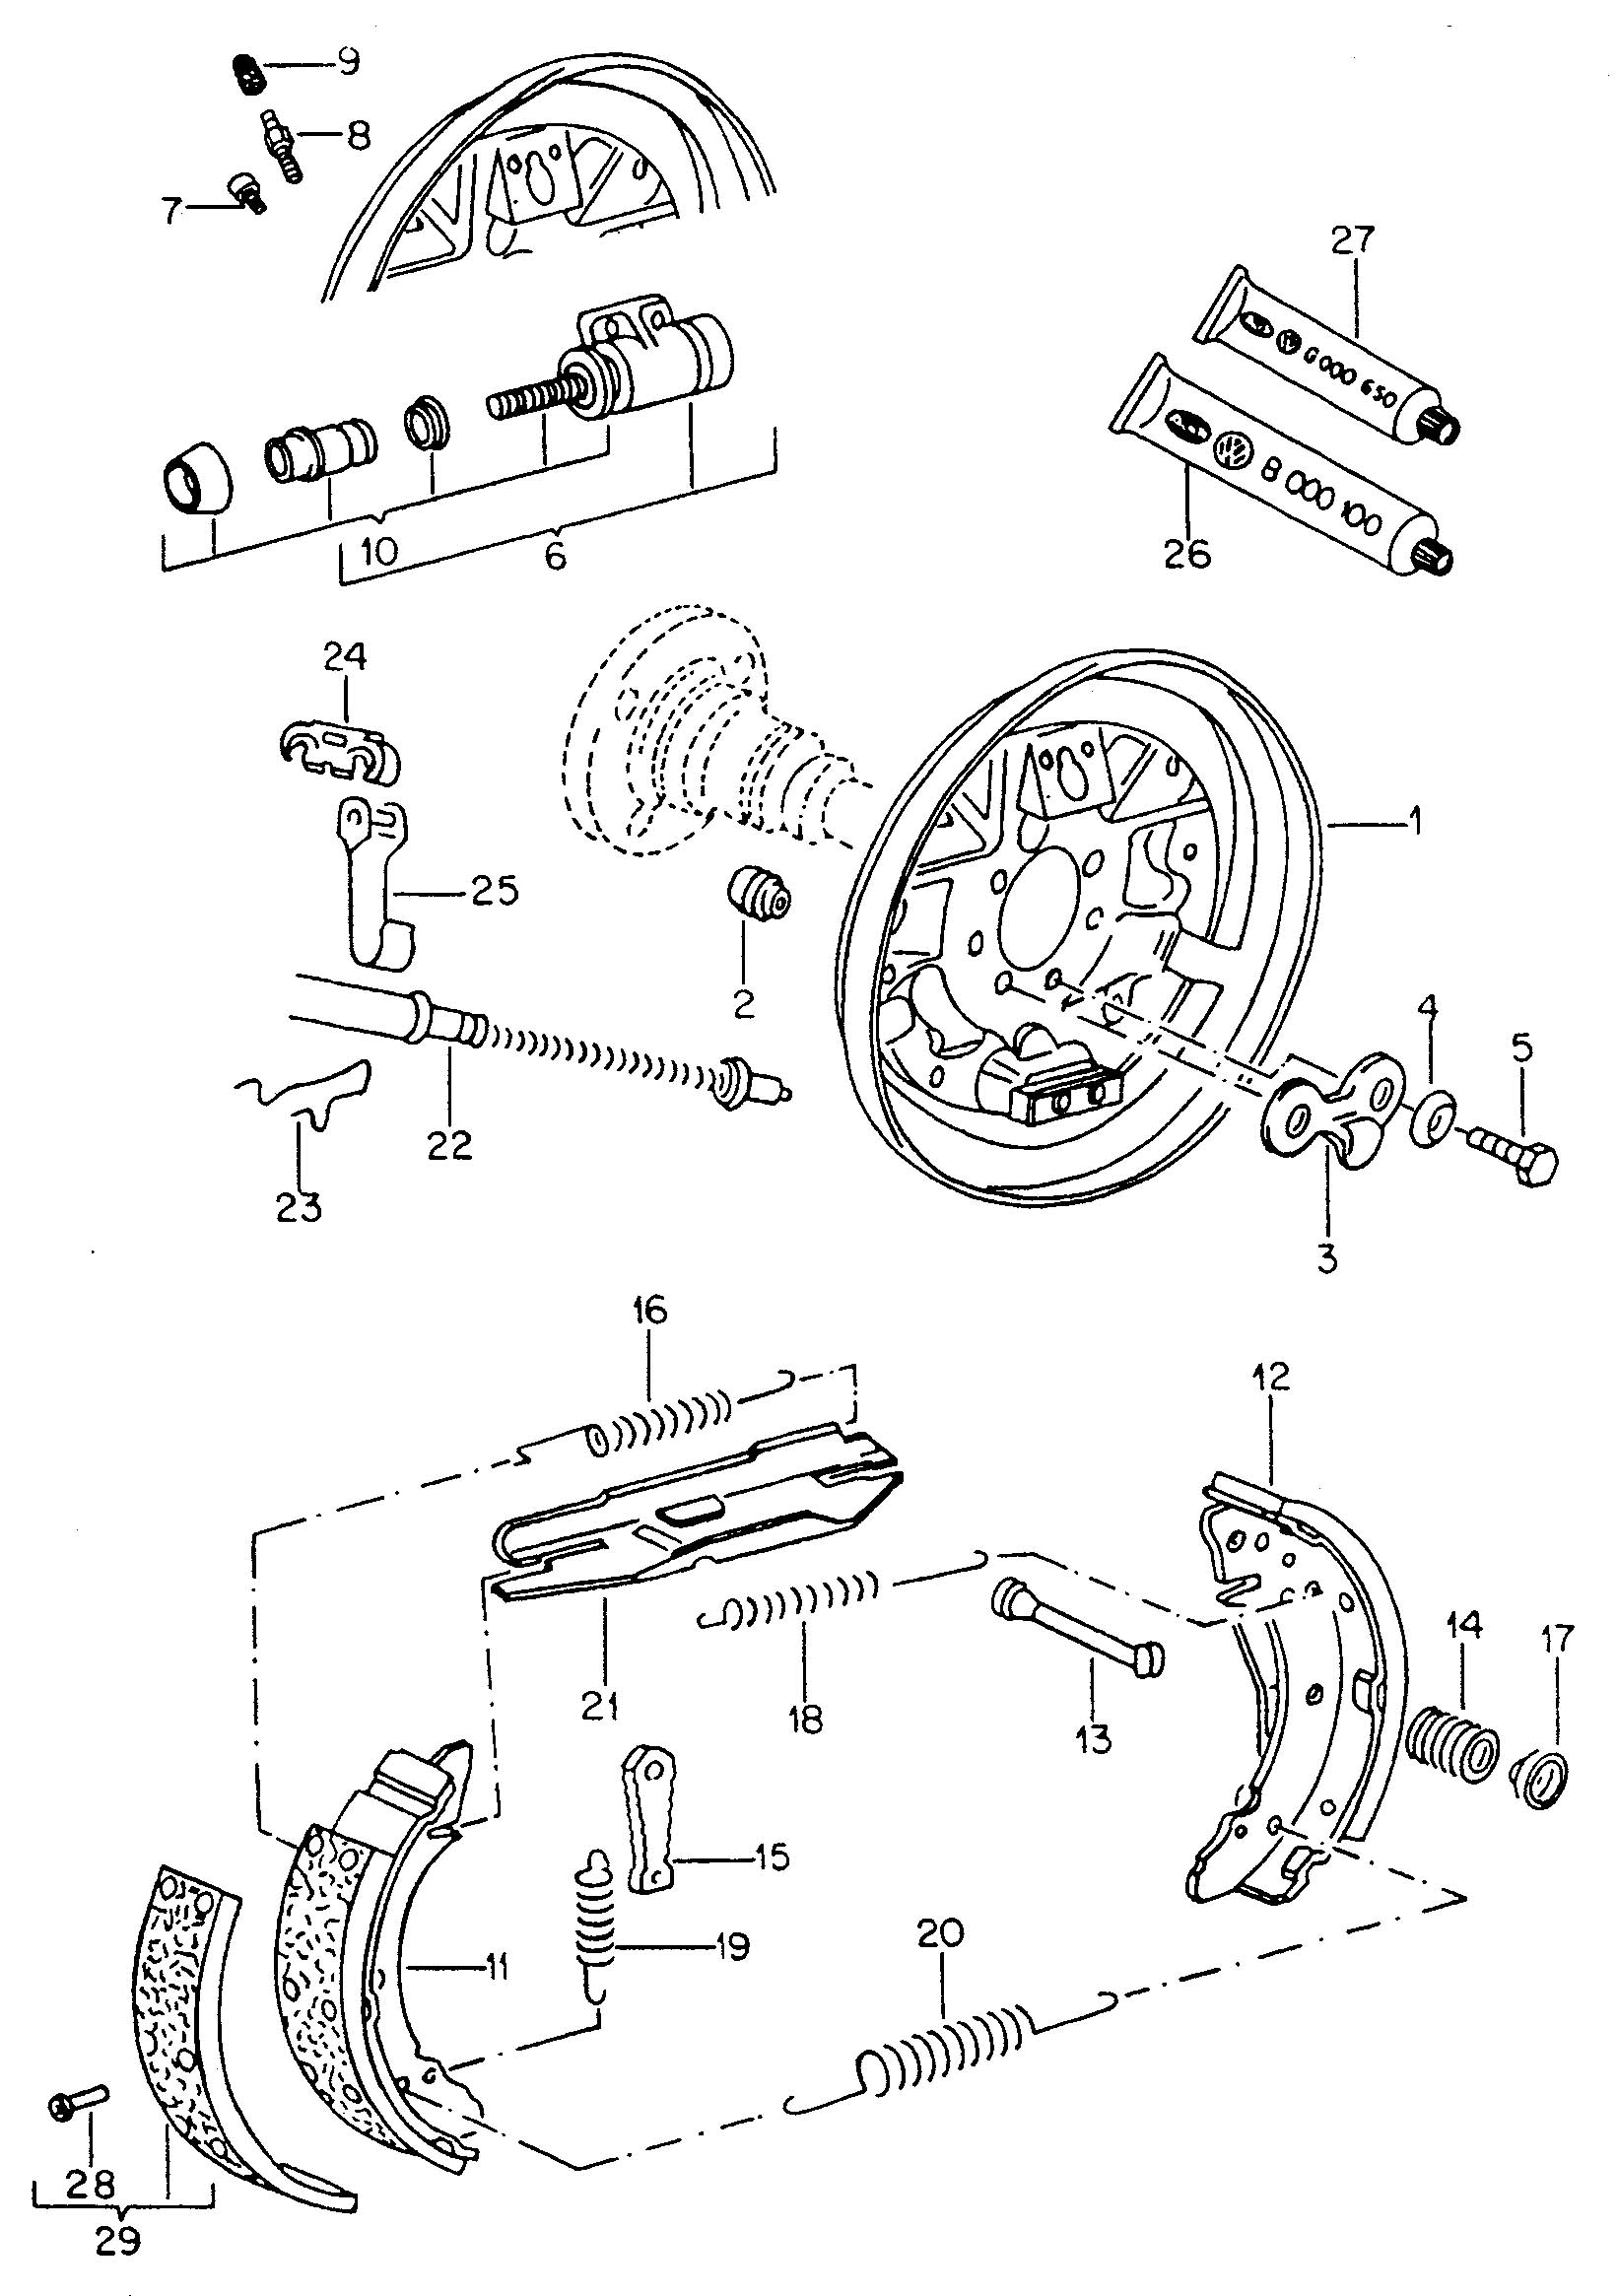 Front Suspension Diagram additionally 1960 Ford 2000 Gas Engine together with 2002 Ford Explorer Sport Trac Wiring Diagram together with Bmw E30 M3 also Strut Tower Brace V8 Car Not 836. on ford ranger struts diagram